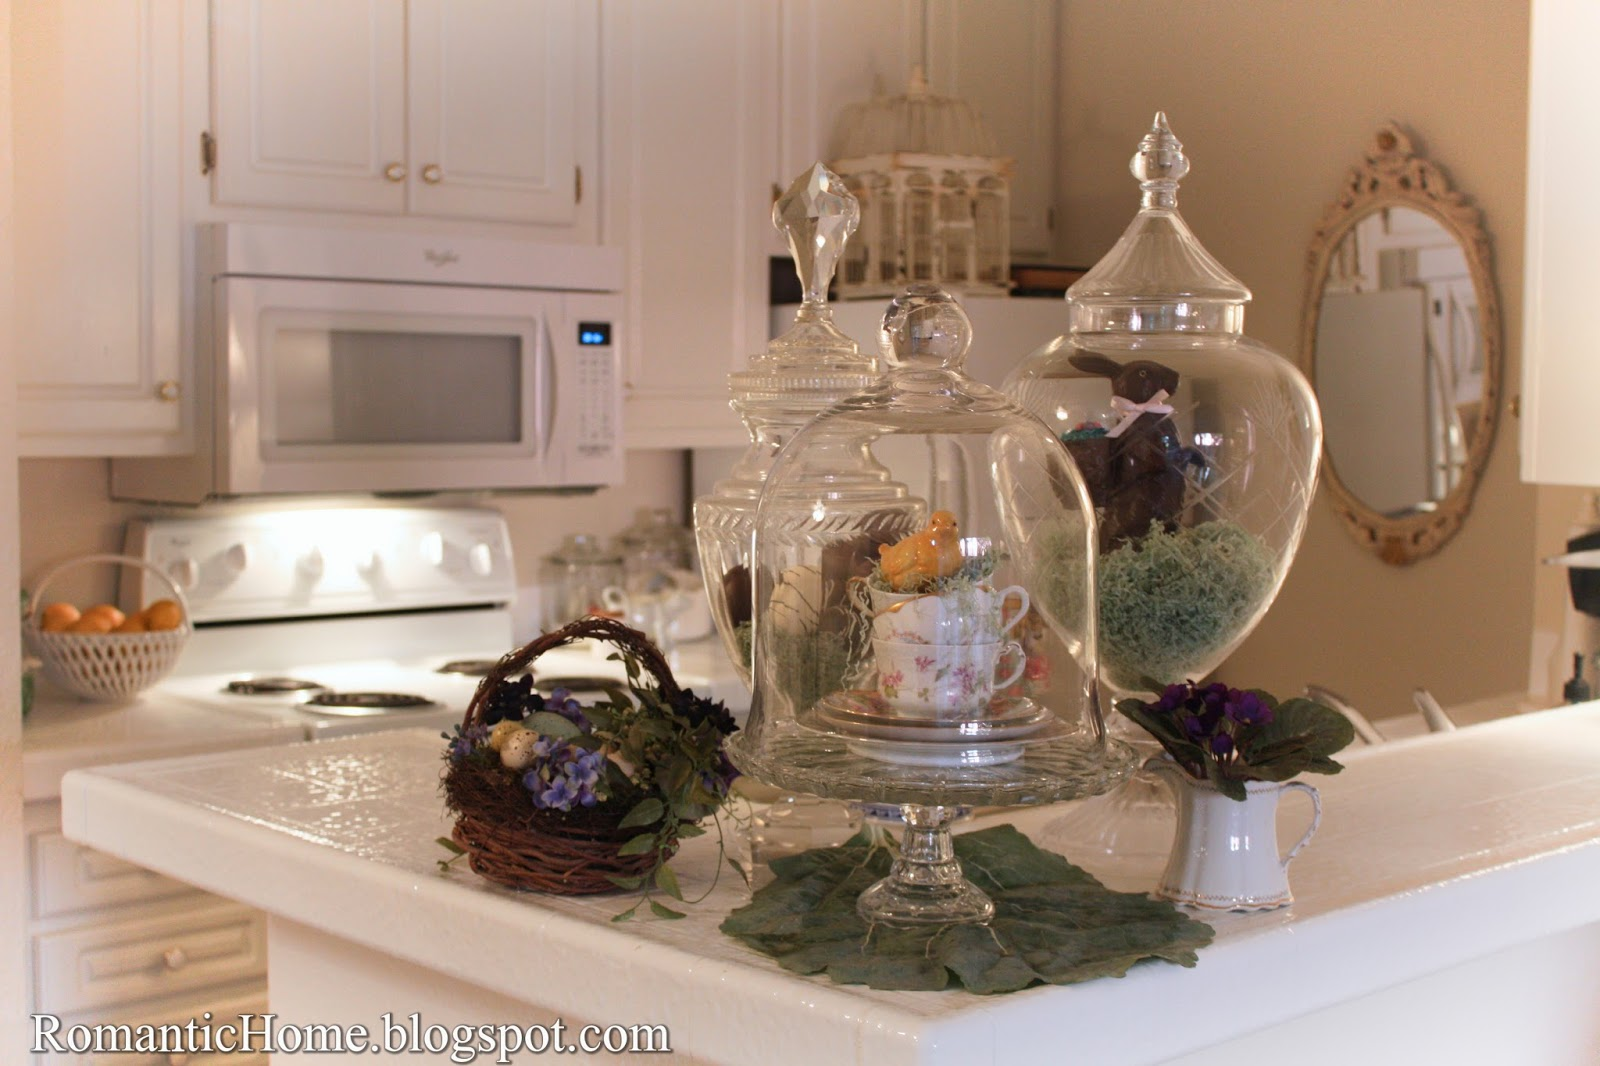 My romantic home a little kitchen easter decor show and tell friday - Designs in glasses for house decoration ...